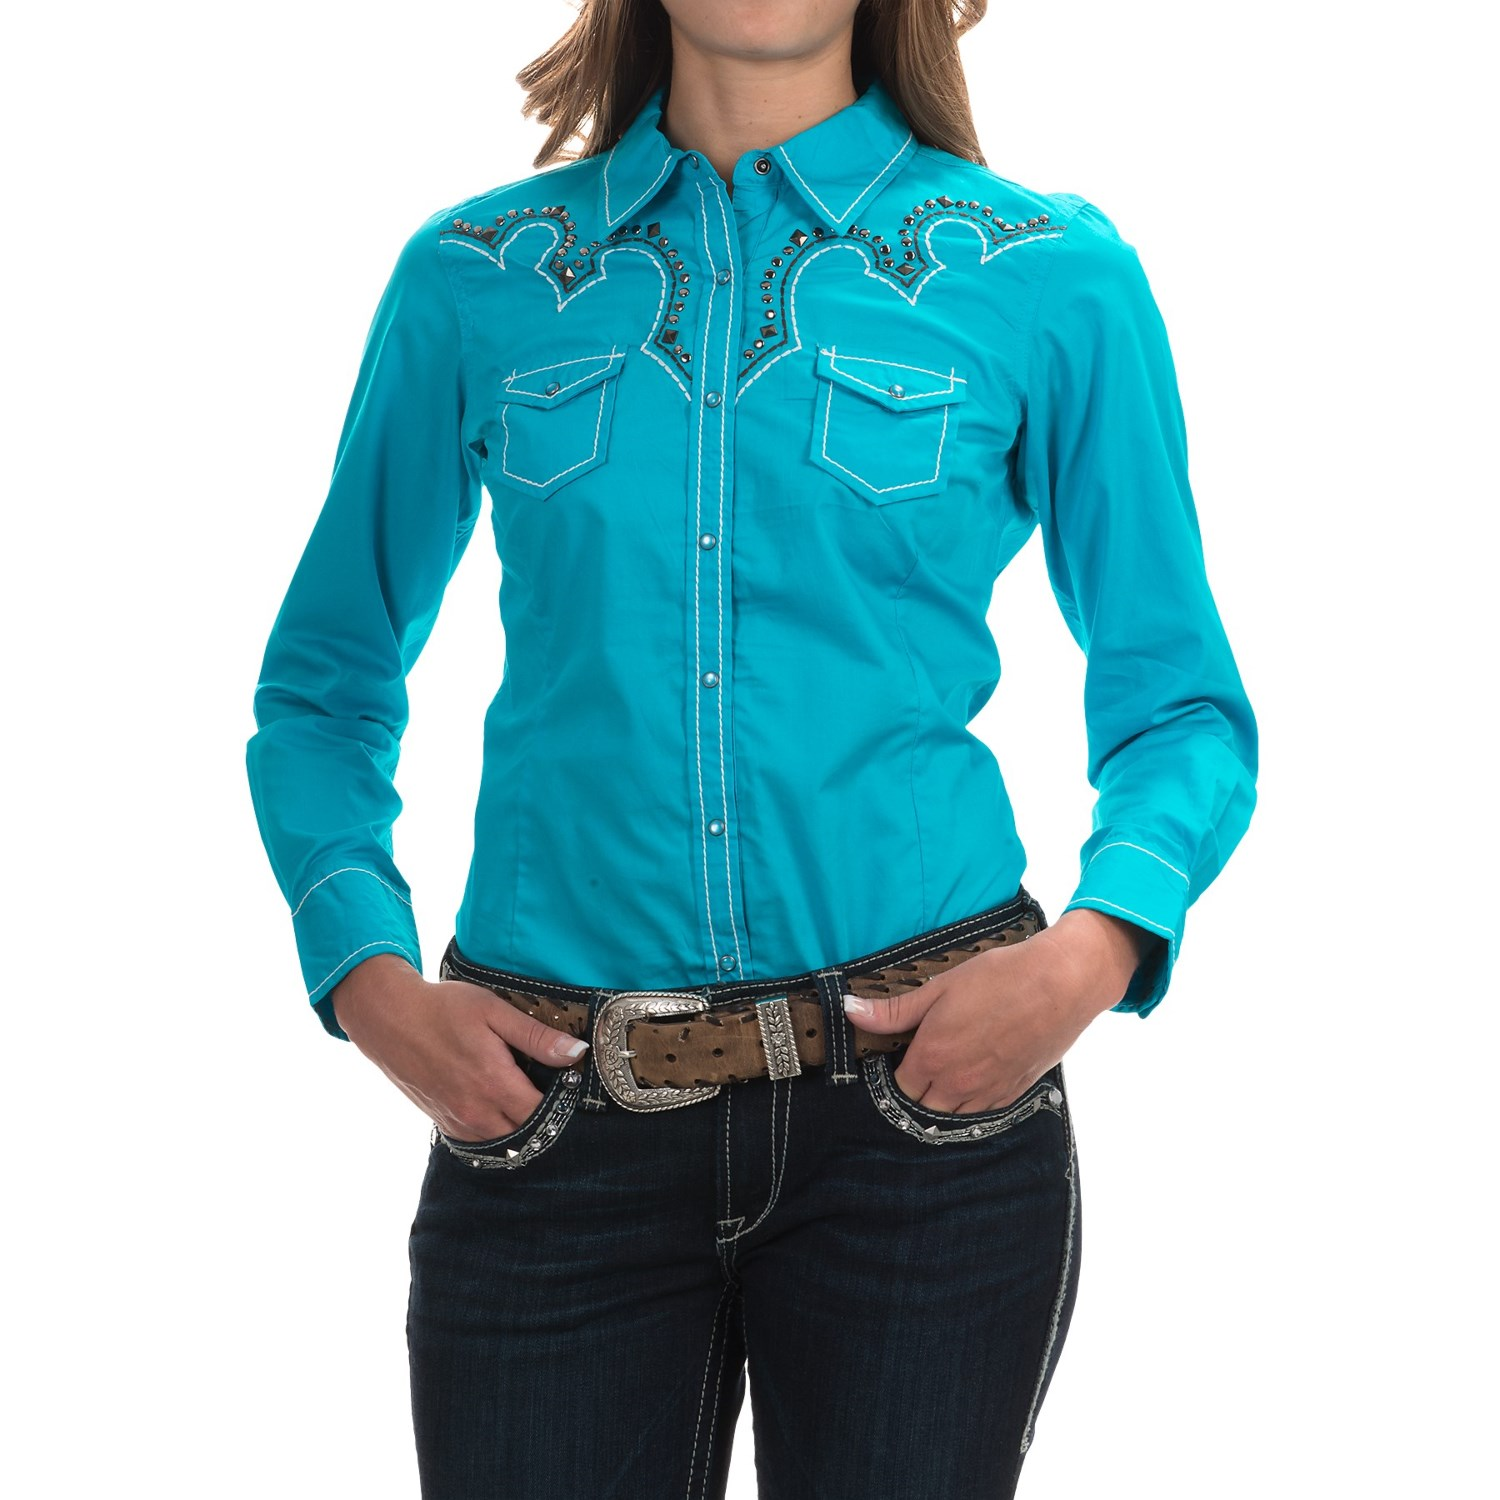 All That--Plain Fitted Shirts! All shirts are manufactured by all that they are specific patterns made to fit riders longer arms so when you bend you have great length! Shirts for Men and Women in an array of colors! Sizes Small to 3am.